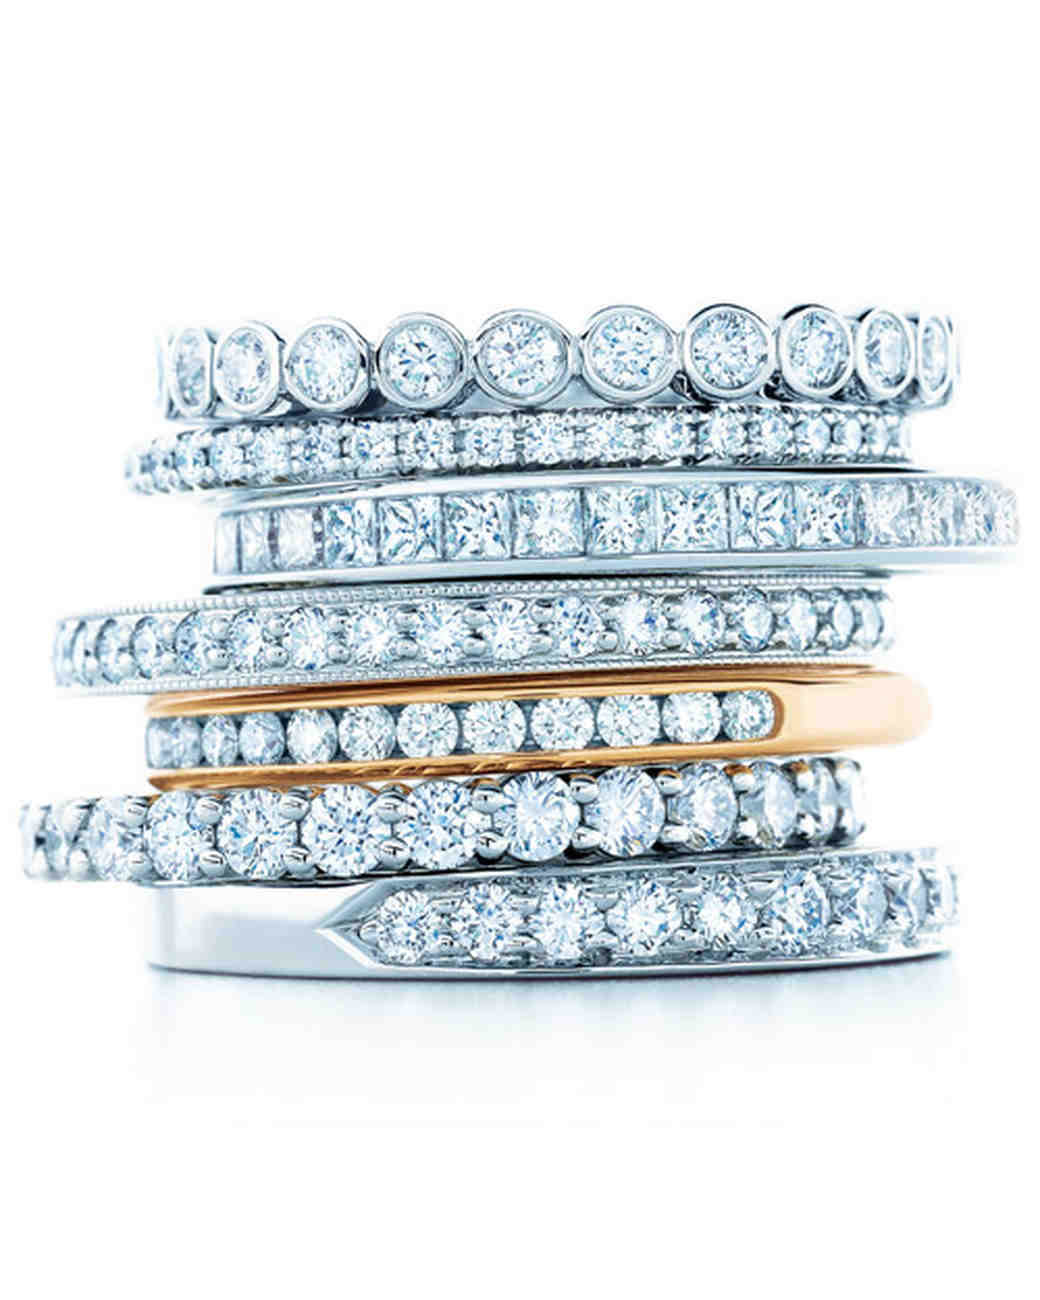 tiffany_celebrationrings.jpg